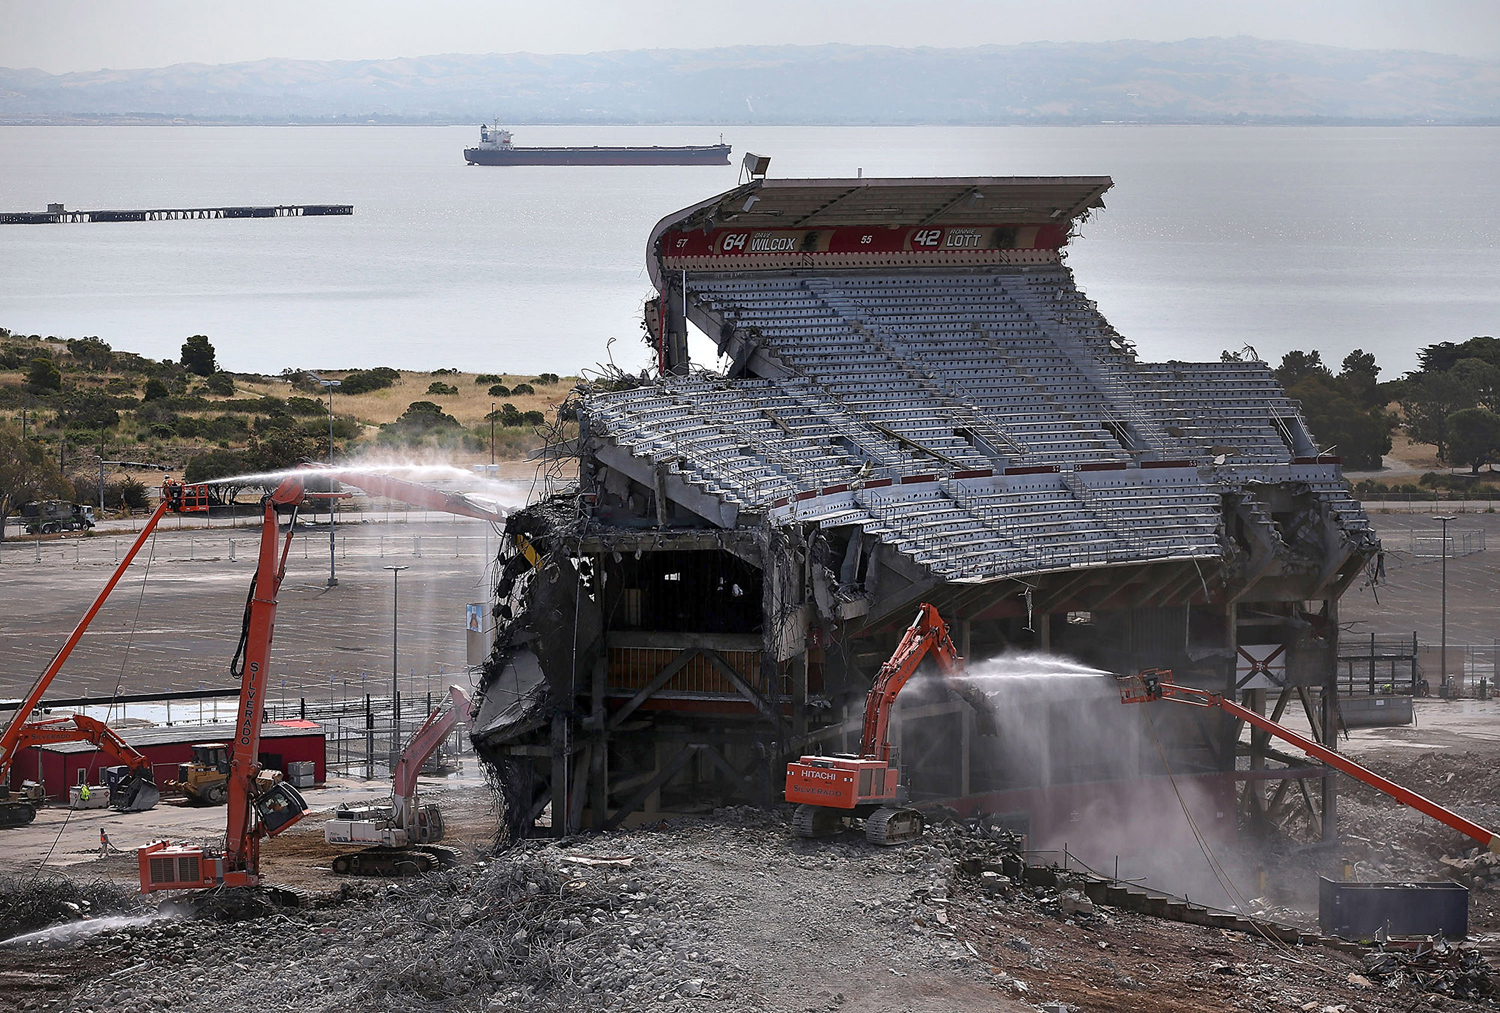 Workers spray water as a section of Candlestick Park is demolished on June 9, 2015 in San Francisco, California.